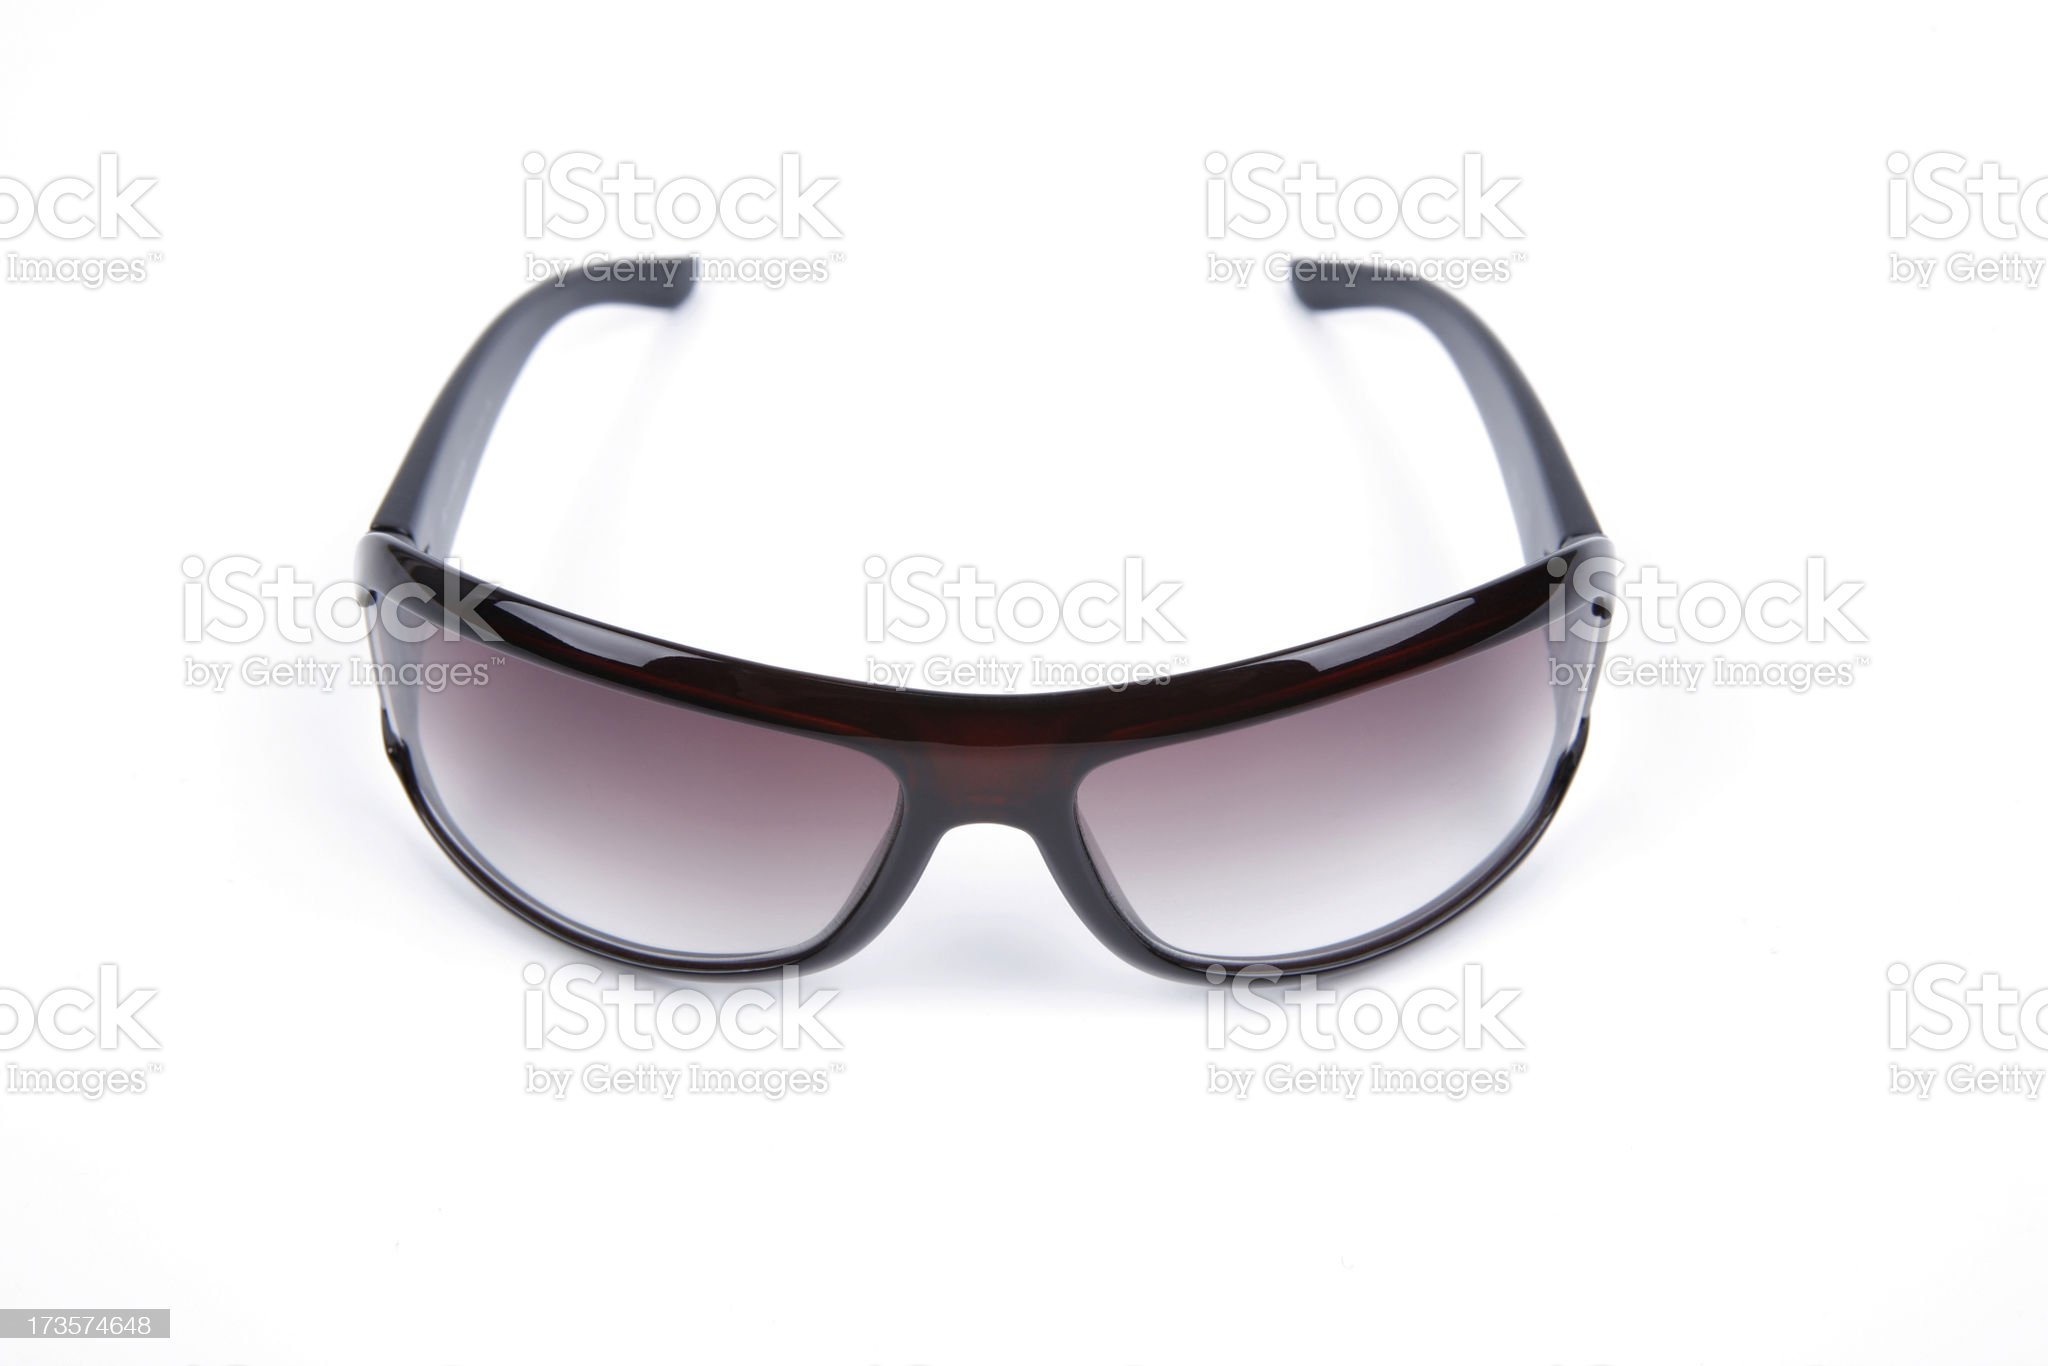 Sunglasses front view royalty-free stock photo